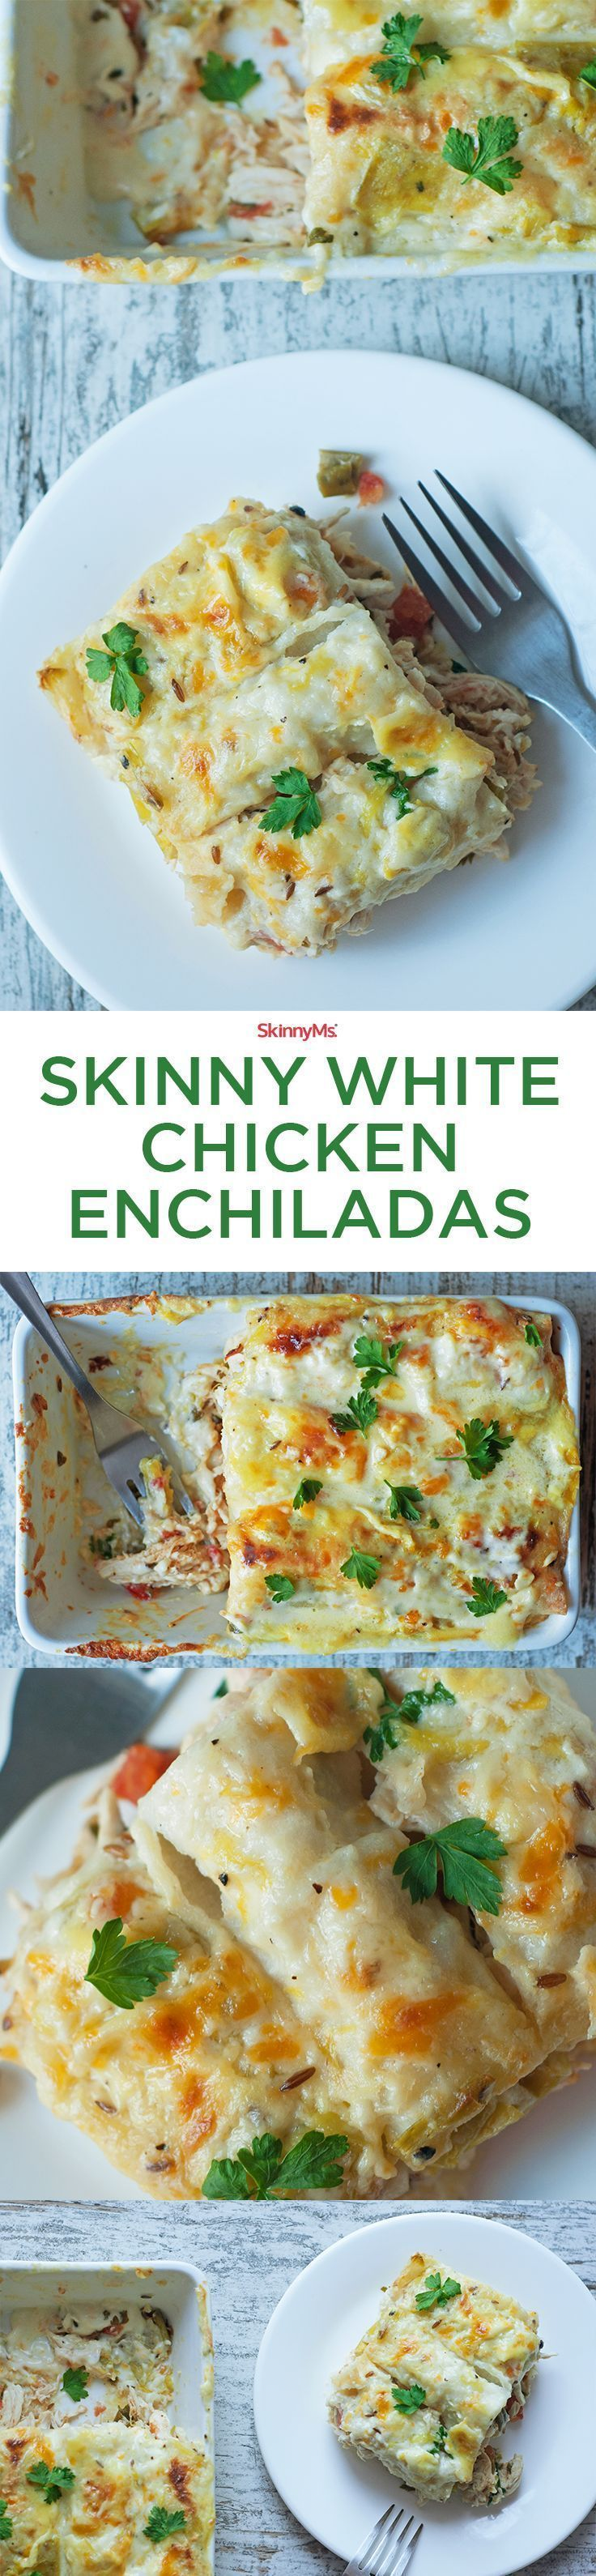 These chicken enchiladas are sure to be a hit with your whole family Serve with